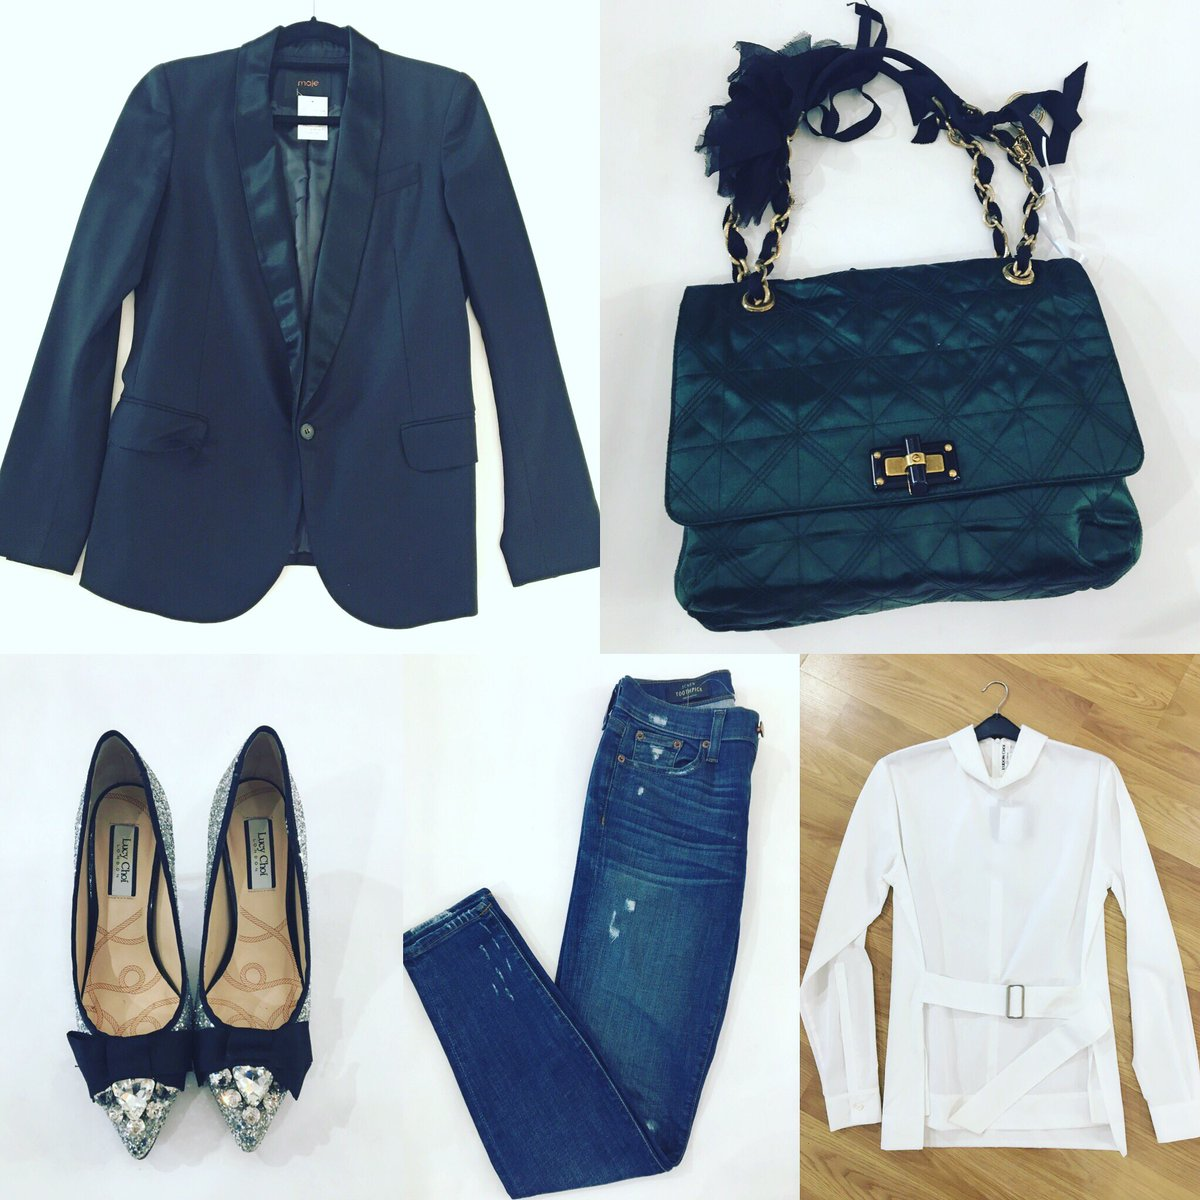 A tuxedo blazer is perfect for dressing up or down. #Maje blazer looks fab with our emerald green silk #Lanvin #Happybag #EudonChoi Ventris shirt #JCrew toothpick jeans  Add a touch of everyday sparkle #LucyChoi #Silverheels (size 38, £60). #capsulewardrobe #lookoftheday<br>http://pic.twitter.com/ShHJ2LdKq7